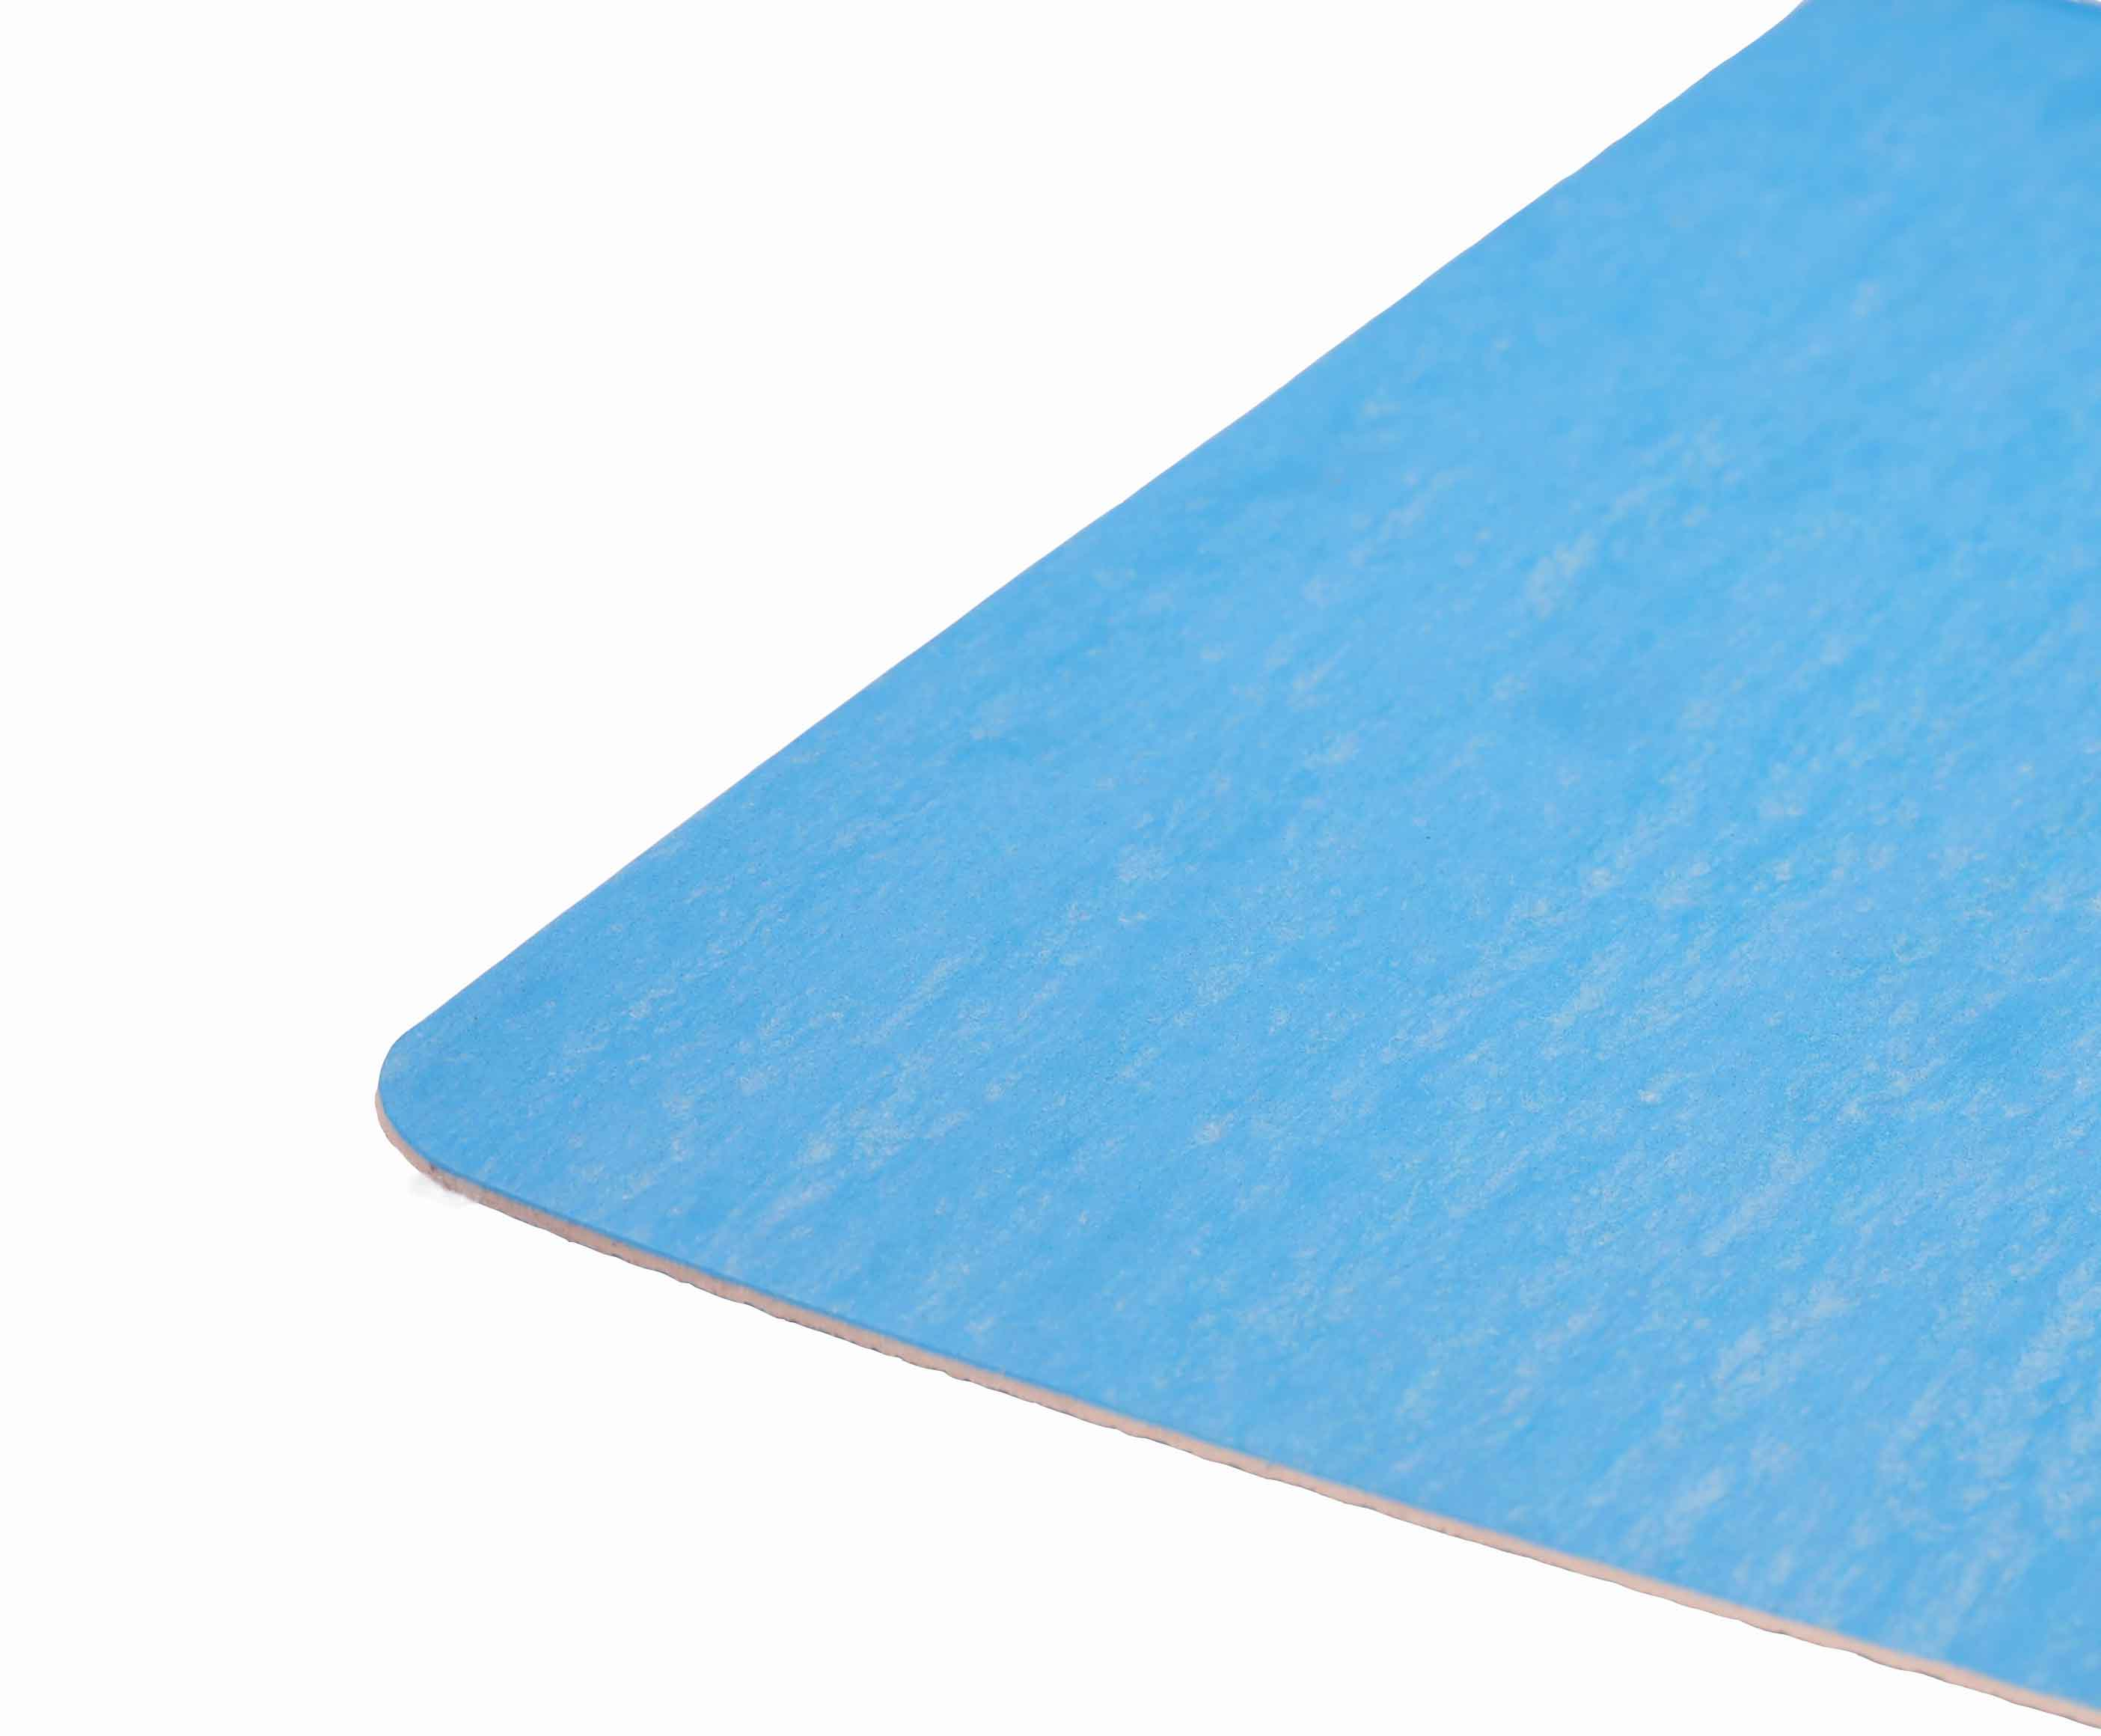 J202 Blue Glass Filled PTFE Jointing Sheet for use with Chemicals, Acids & Alkalis.